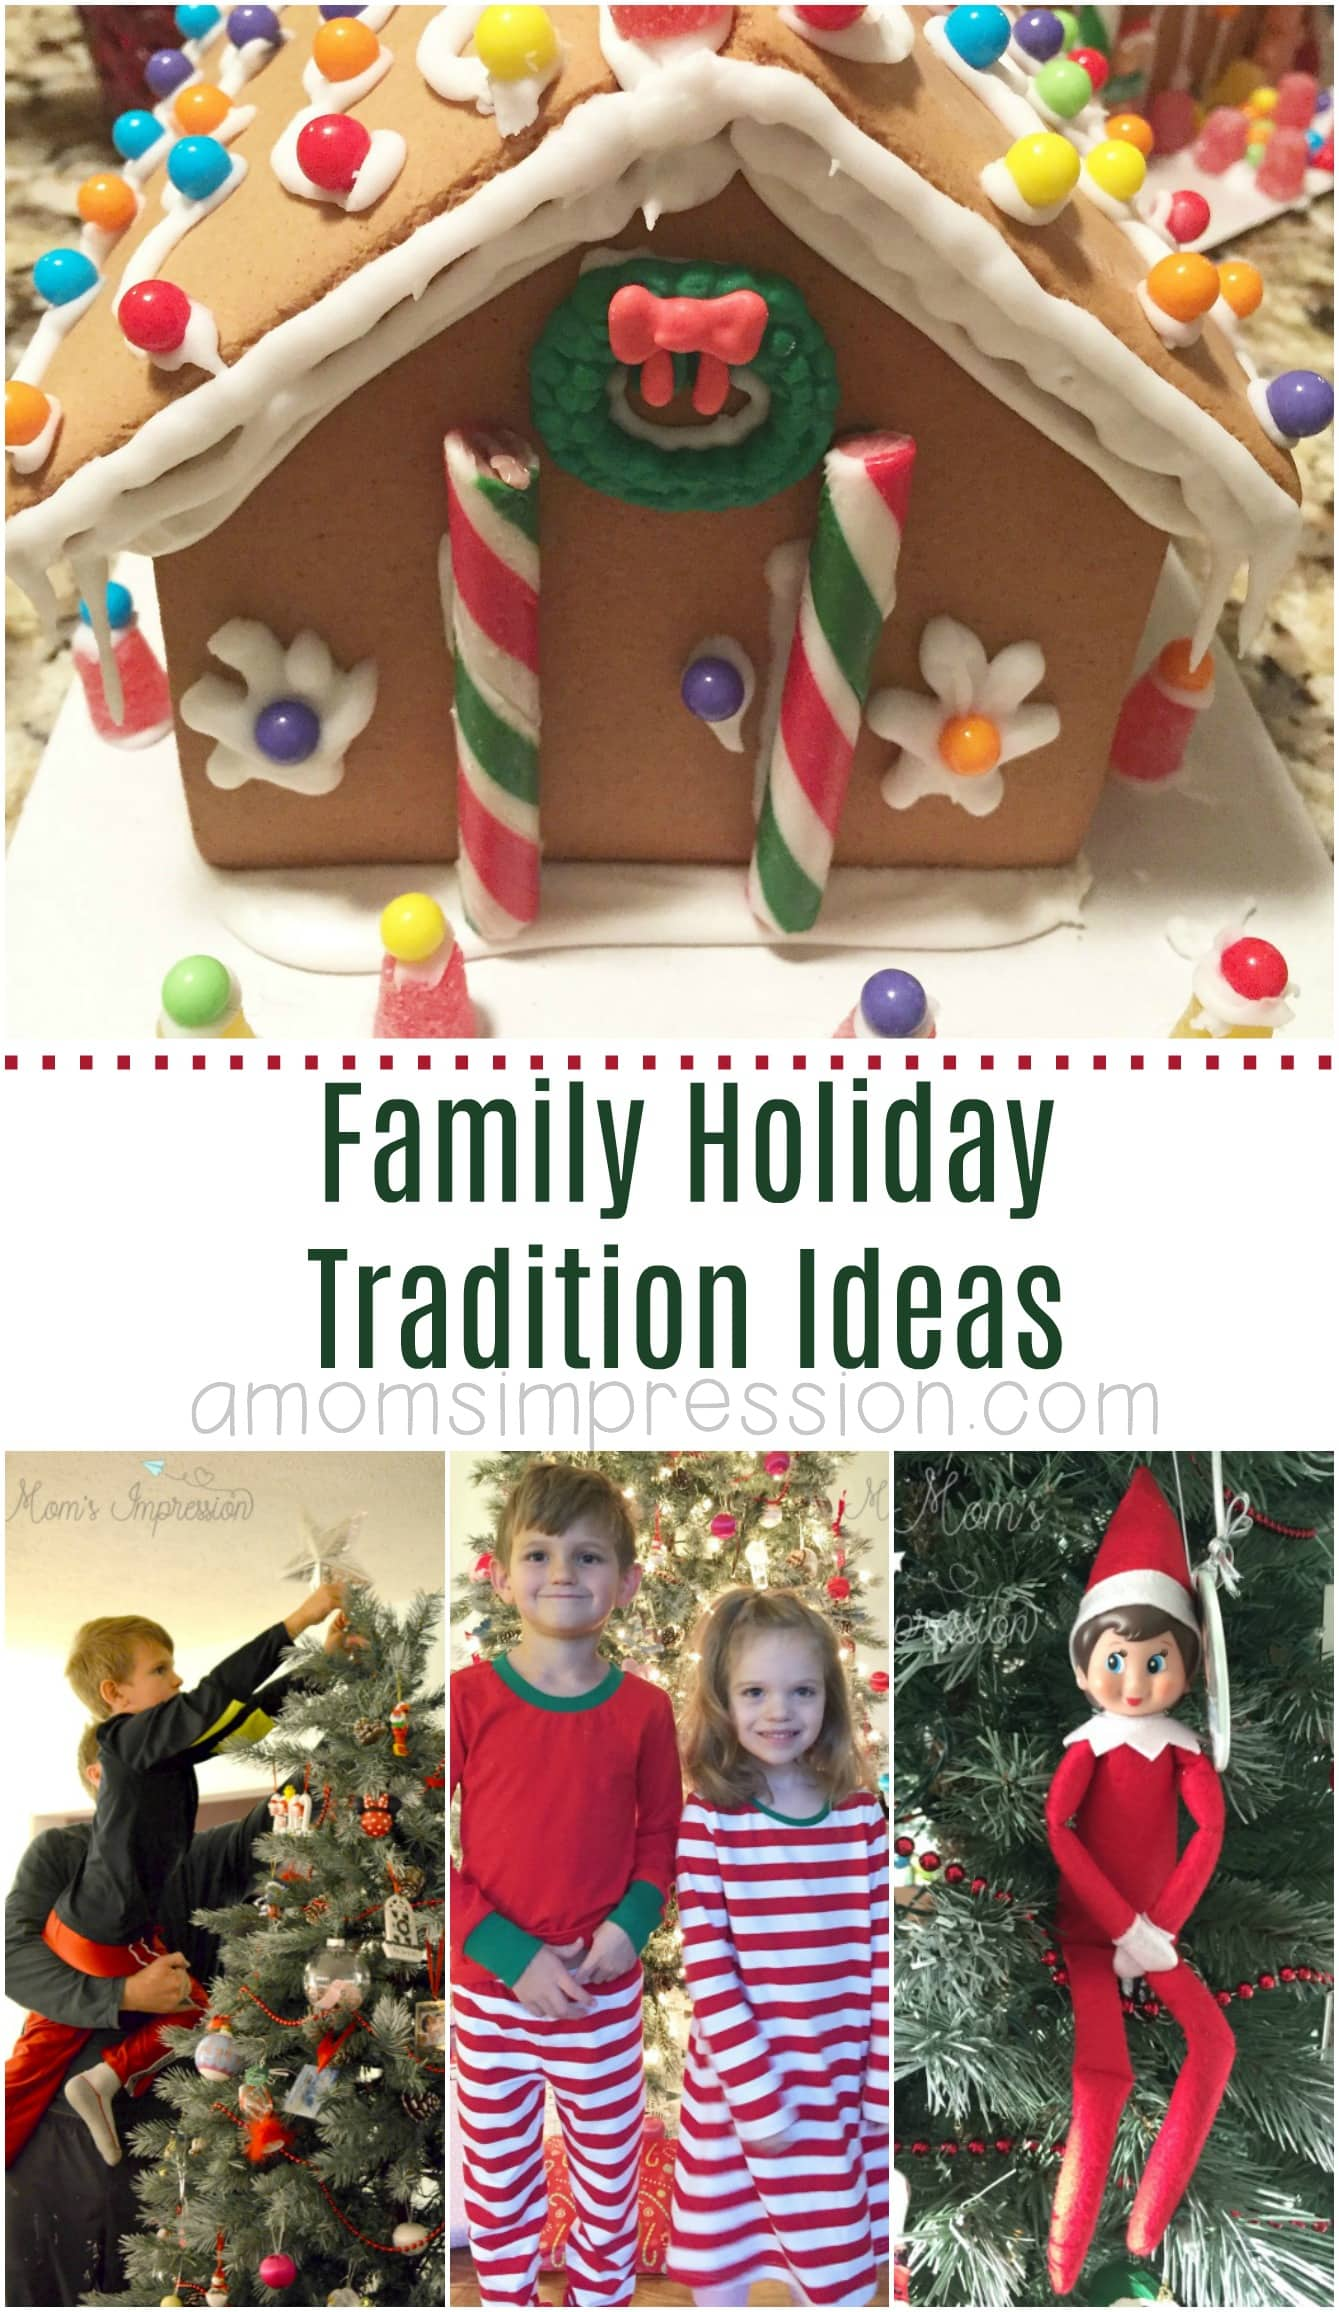 Are you looking for new family holiday tradition ideas for your kids? Check out these fun 5 Christmas ideas you can do inside your own house this year!